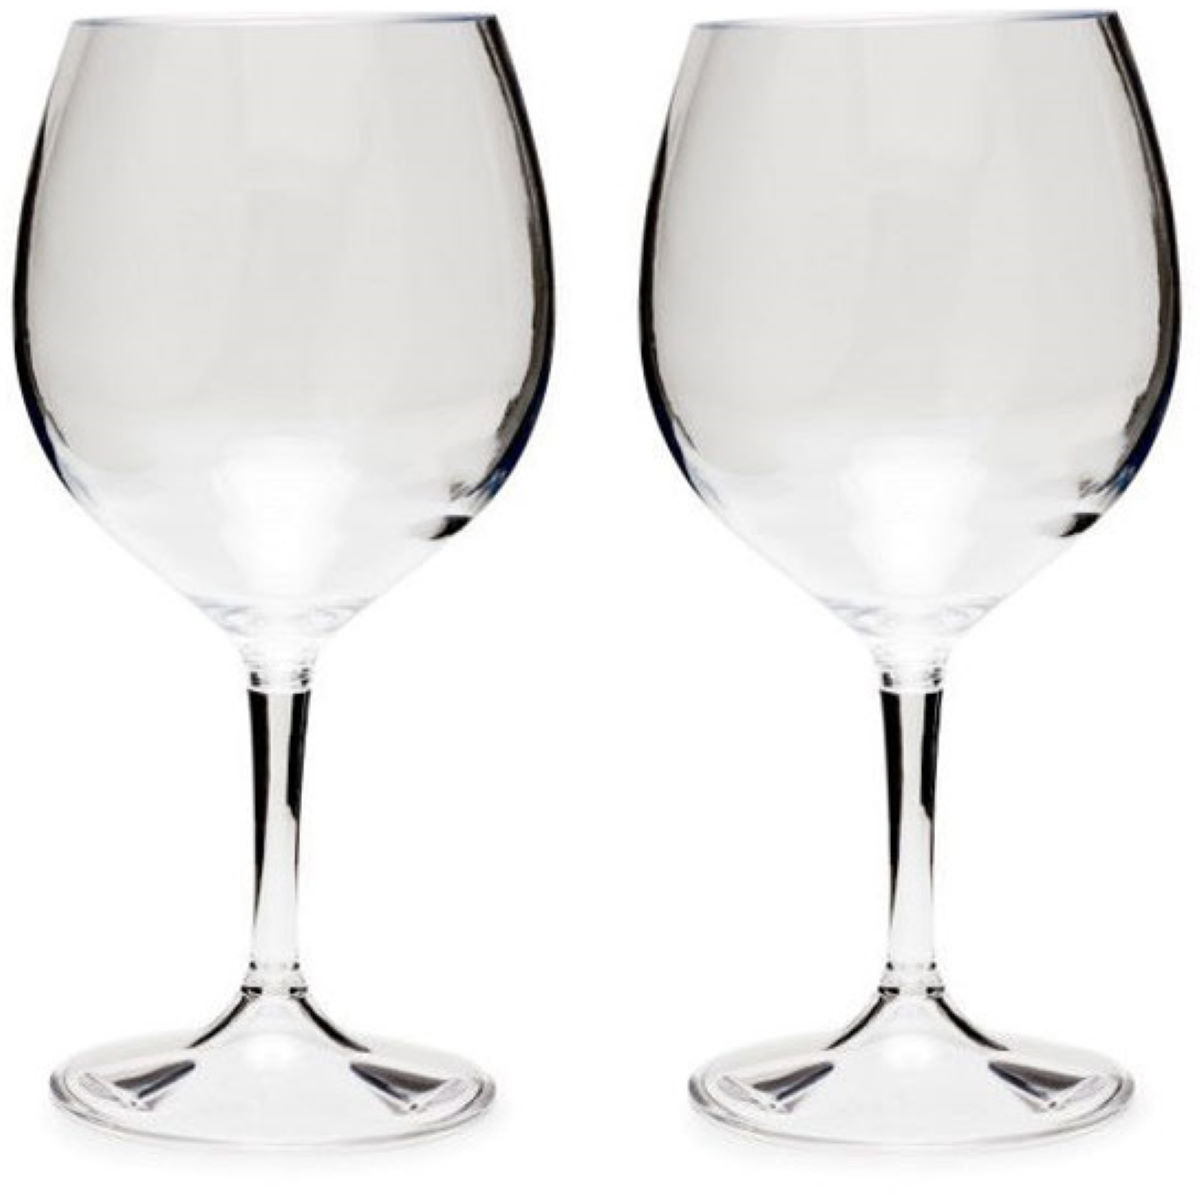 GSI Outdoors Nesting Red Wine Glass Set - Vajilla